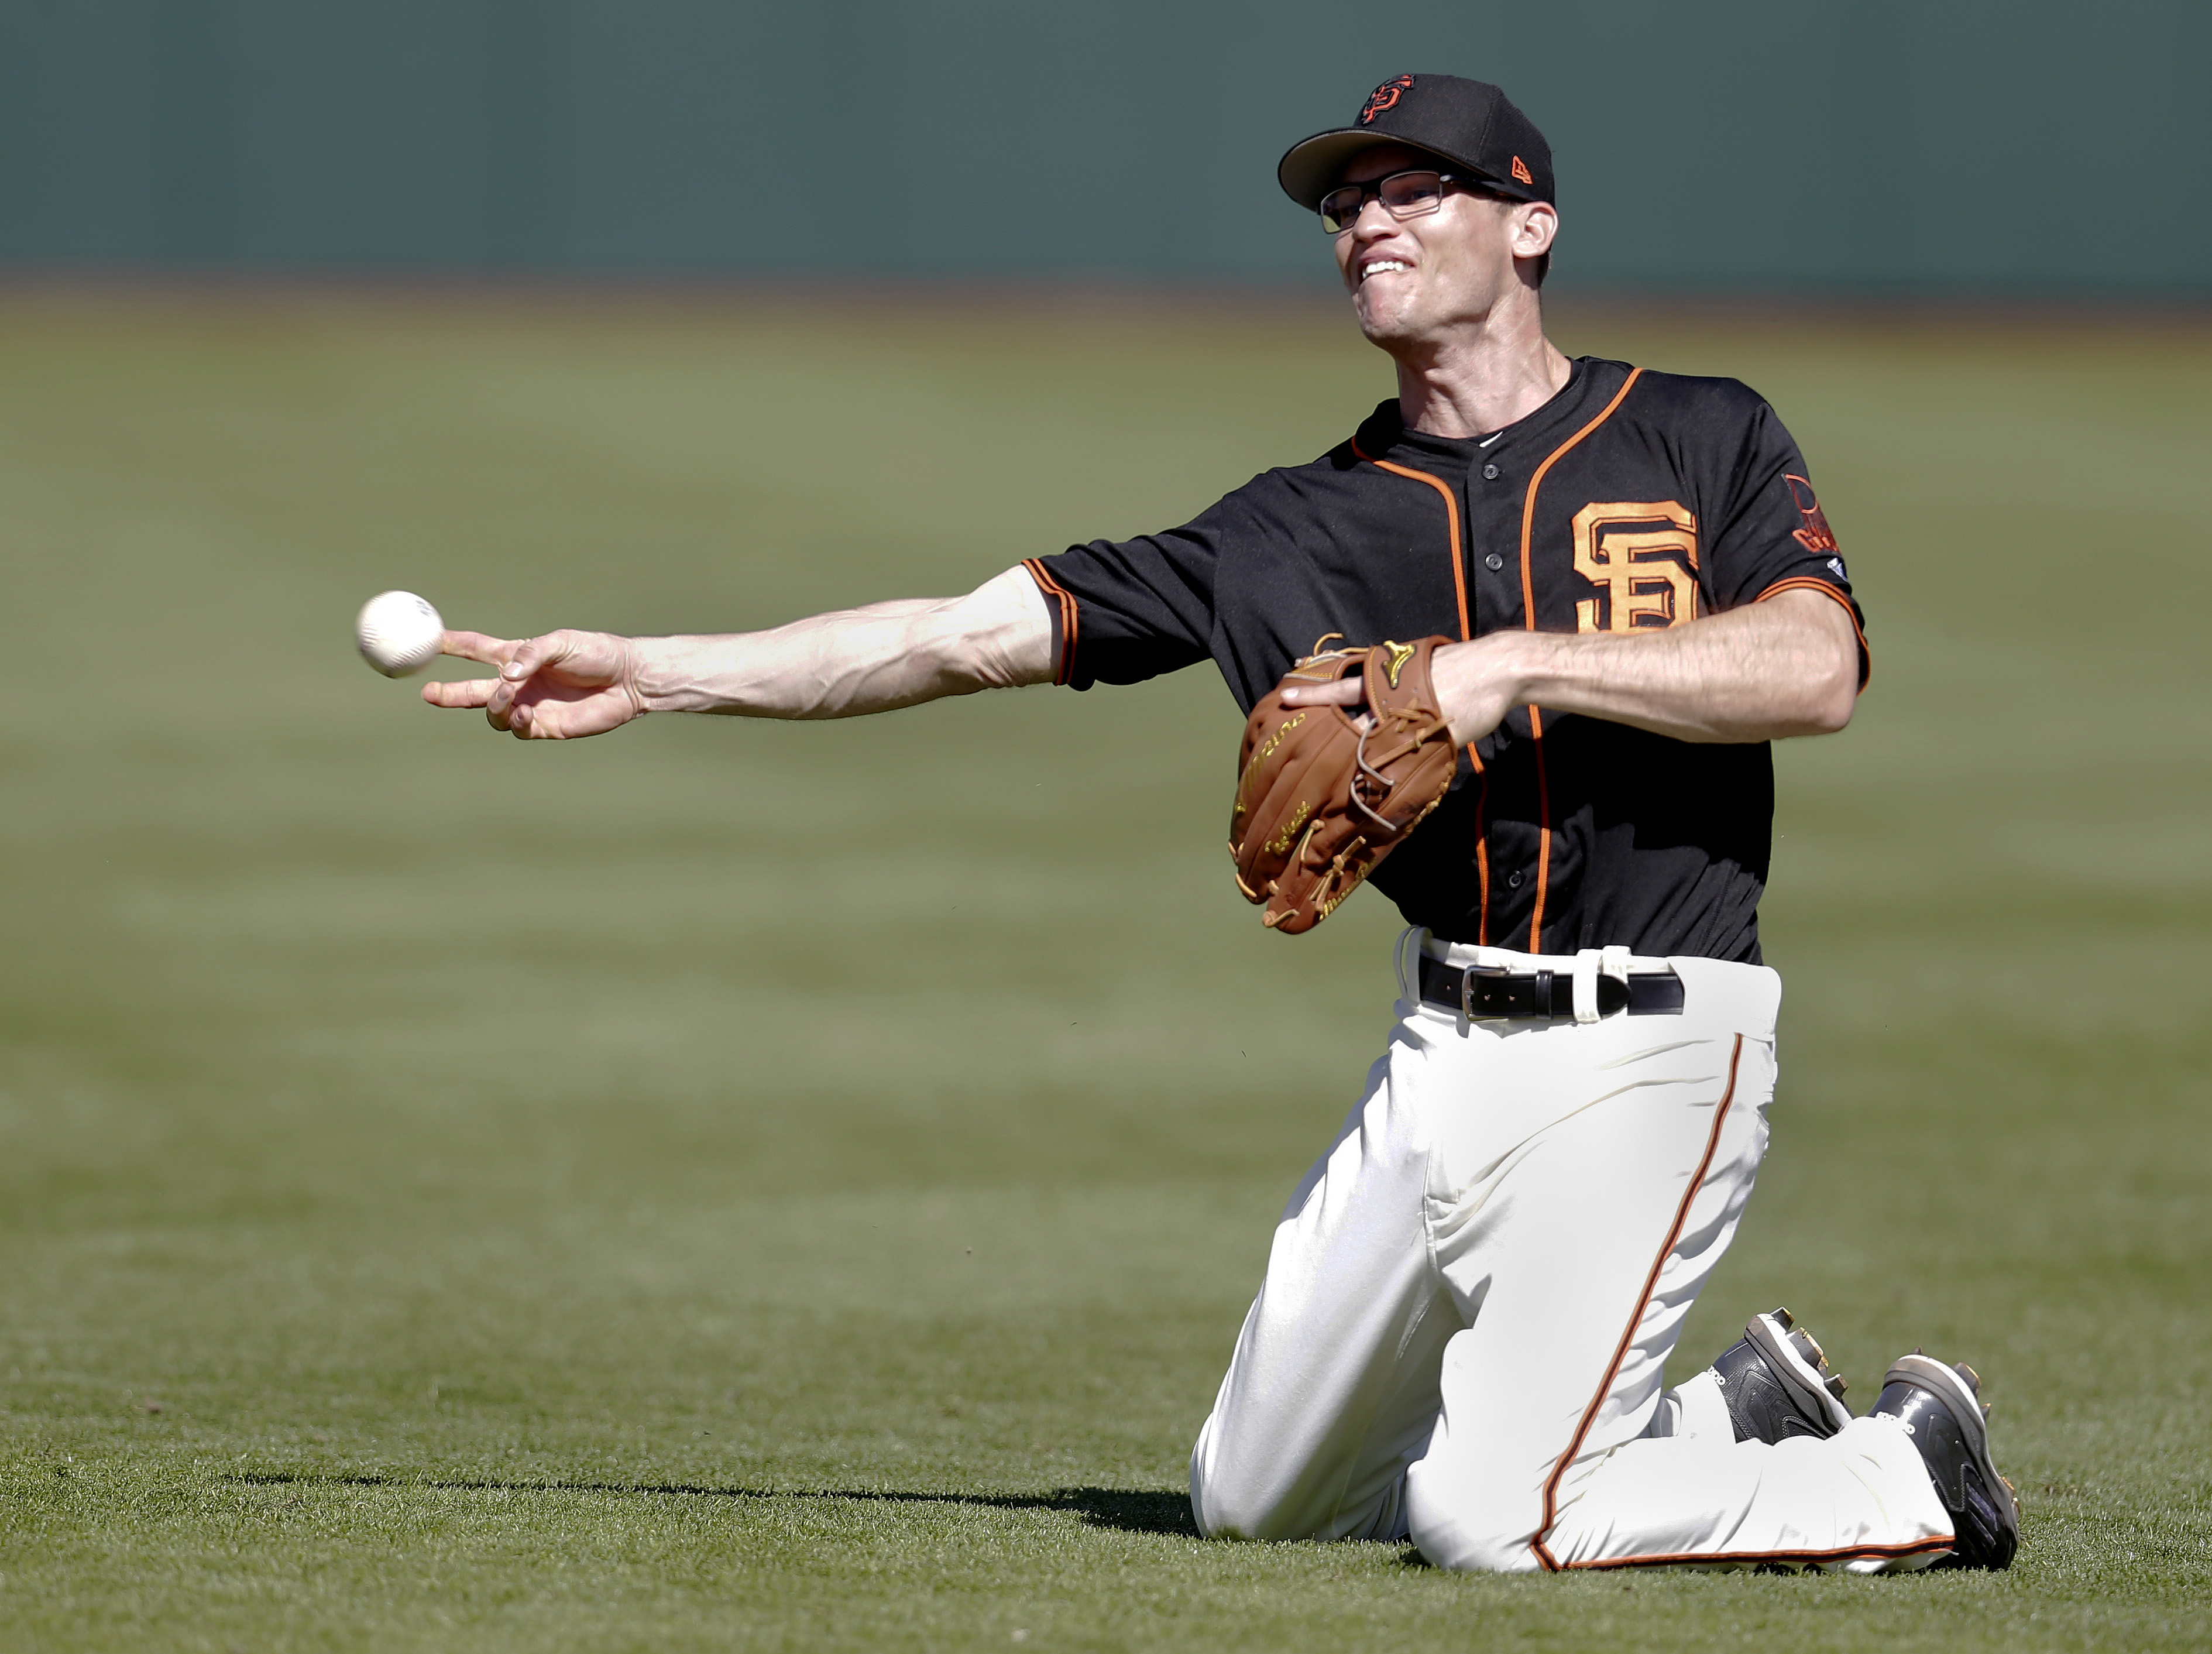 9899537-mlb-spring-training-chicago-cubs-at-san-francisco-giants